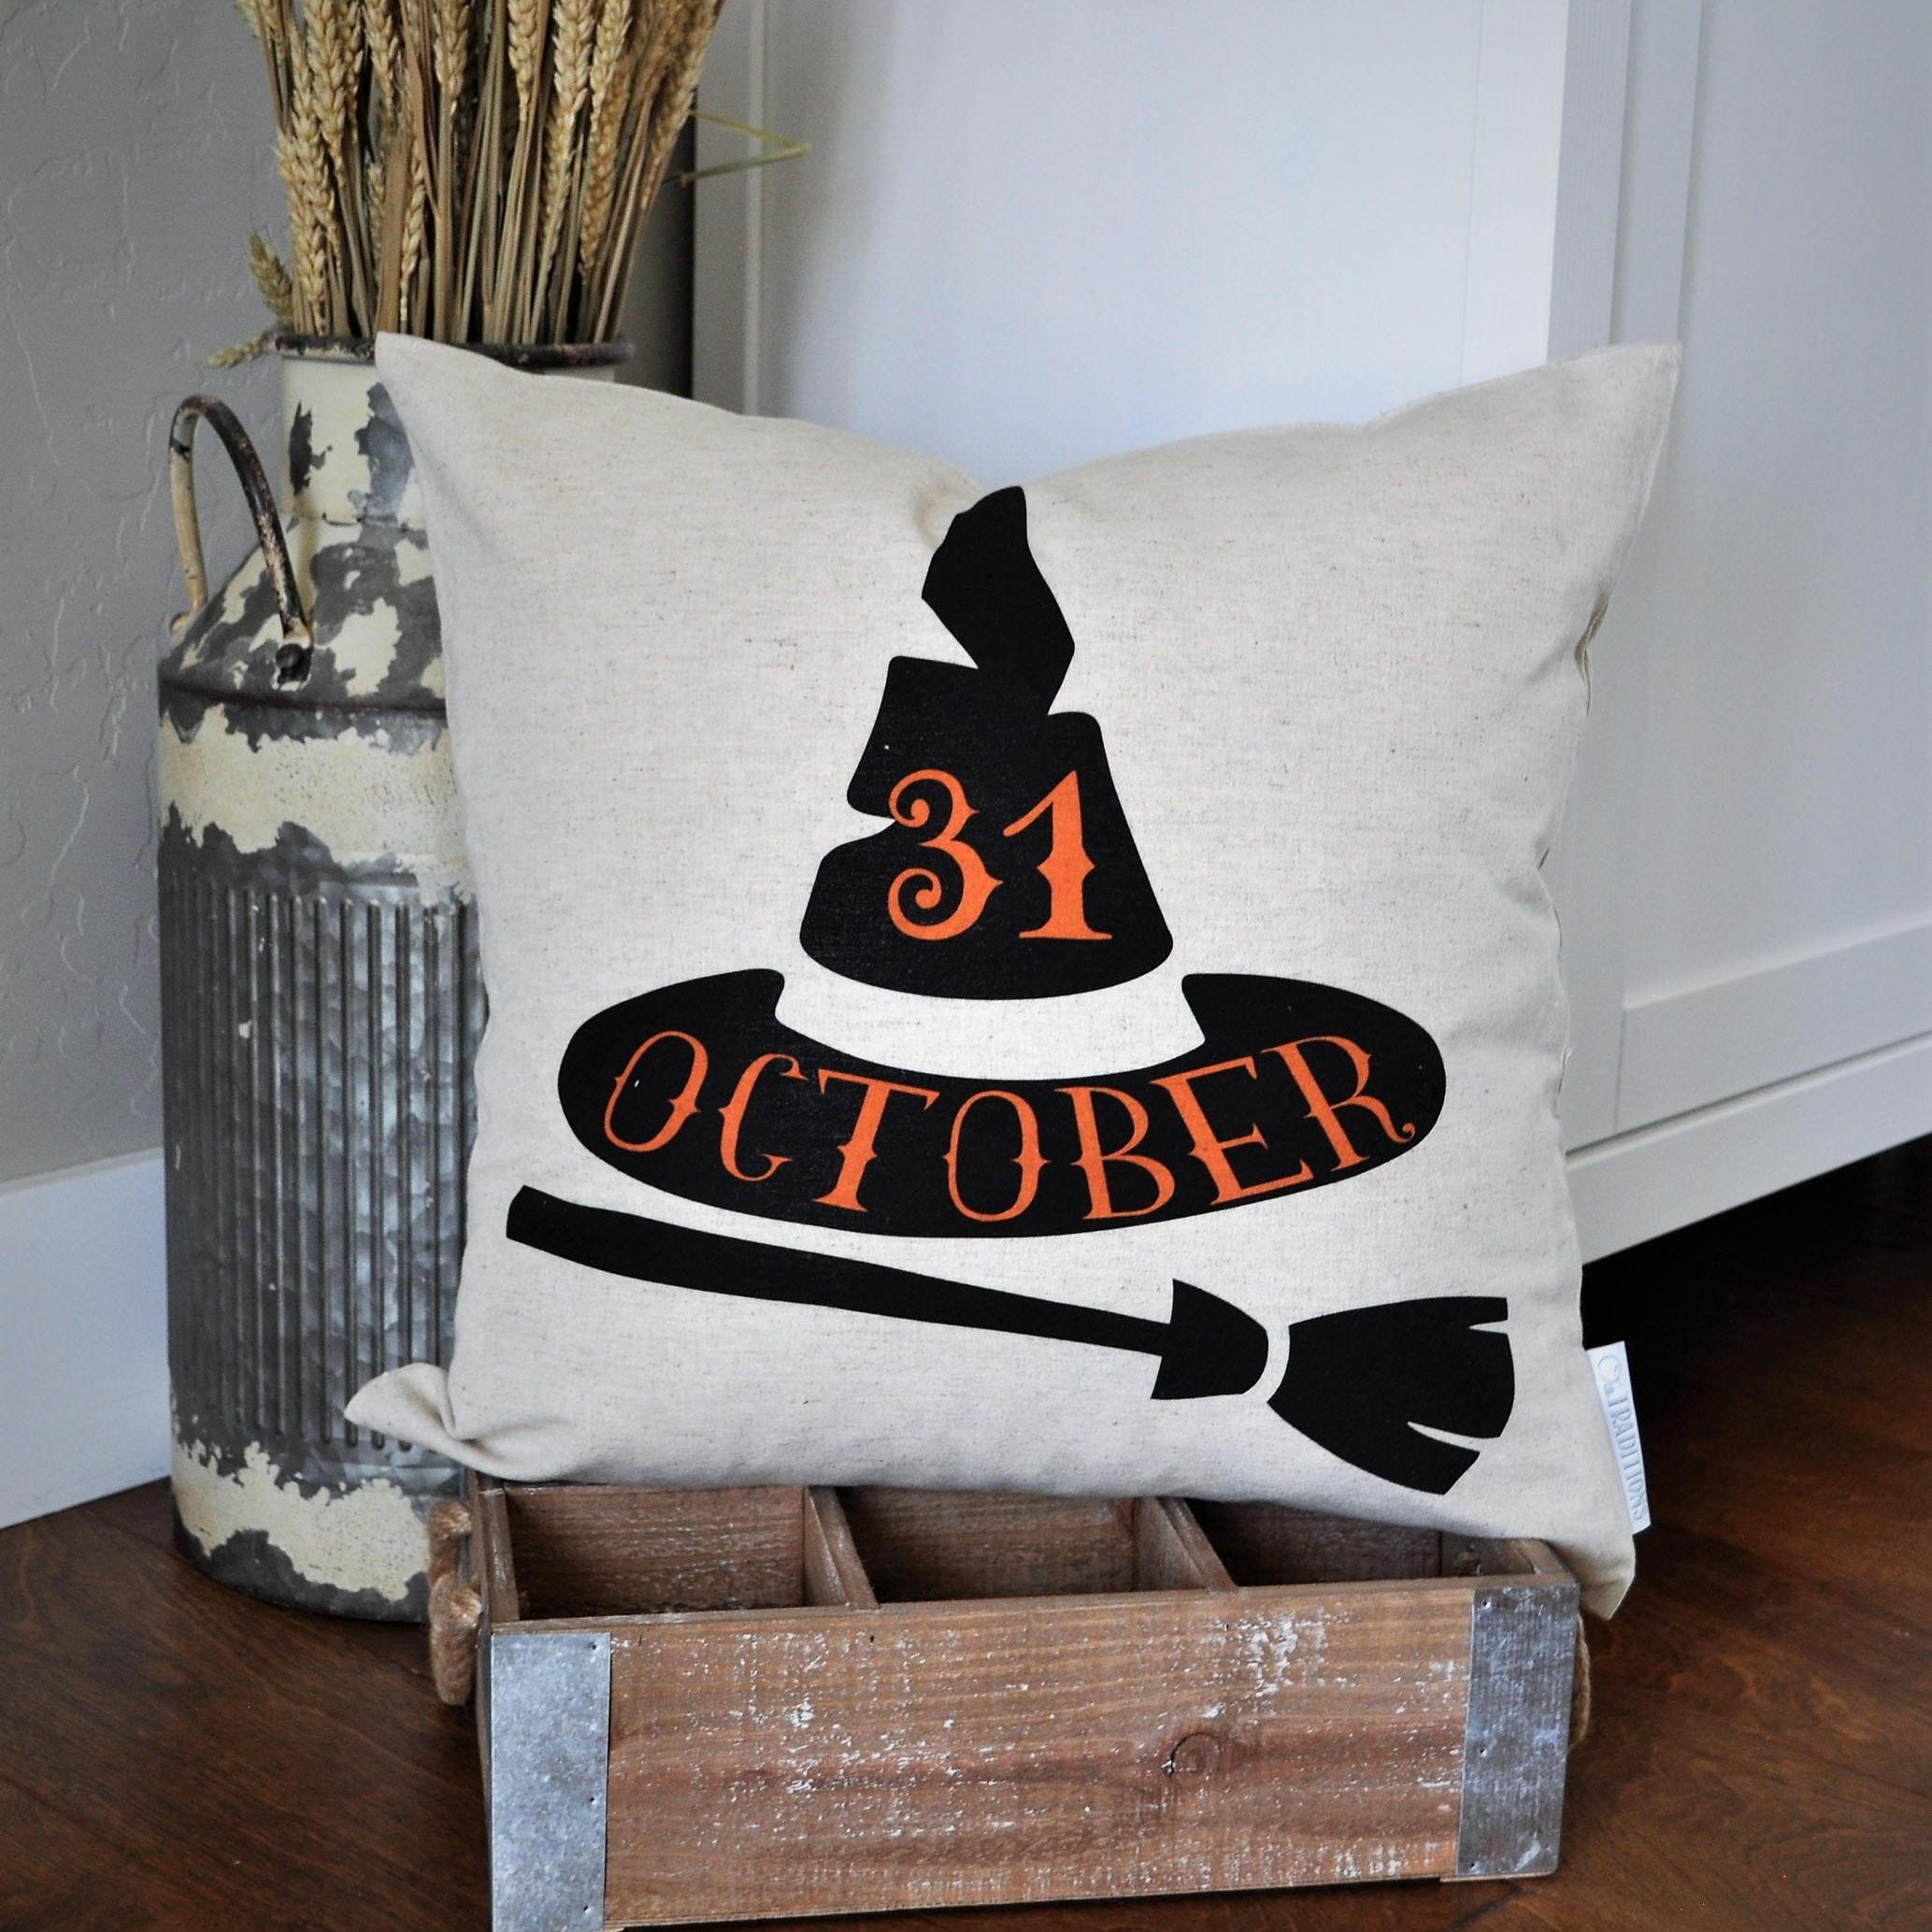 october 31 witch hat pillow cover – our traditions boutique